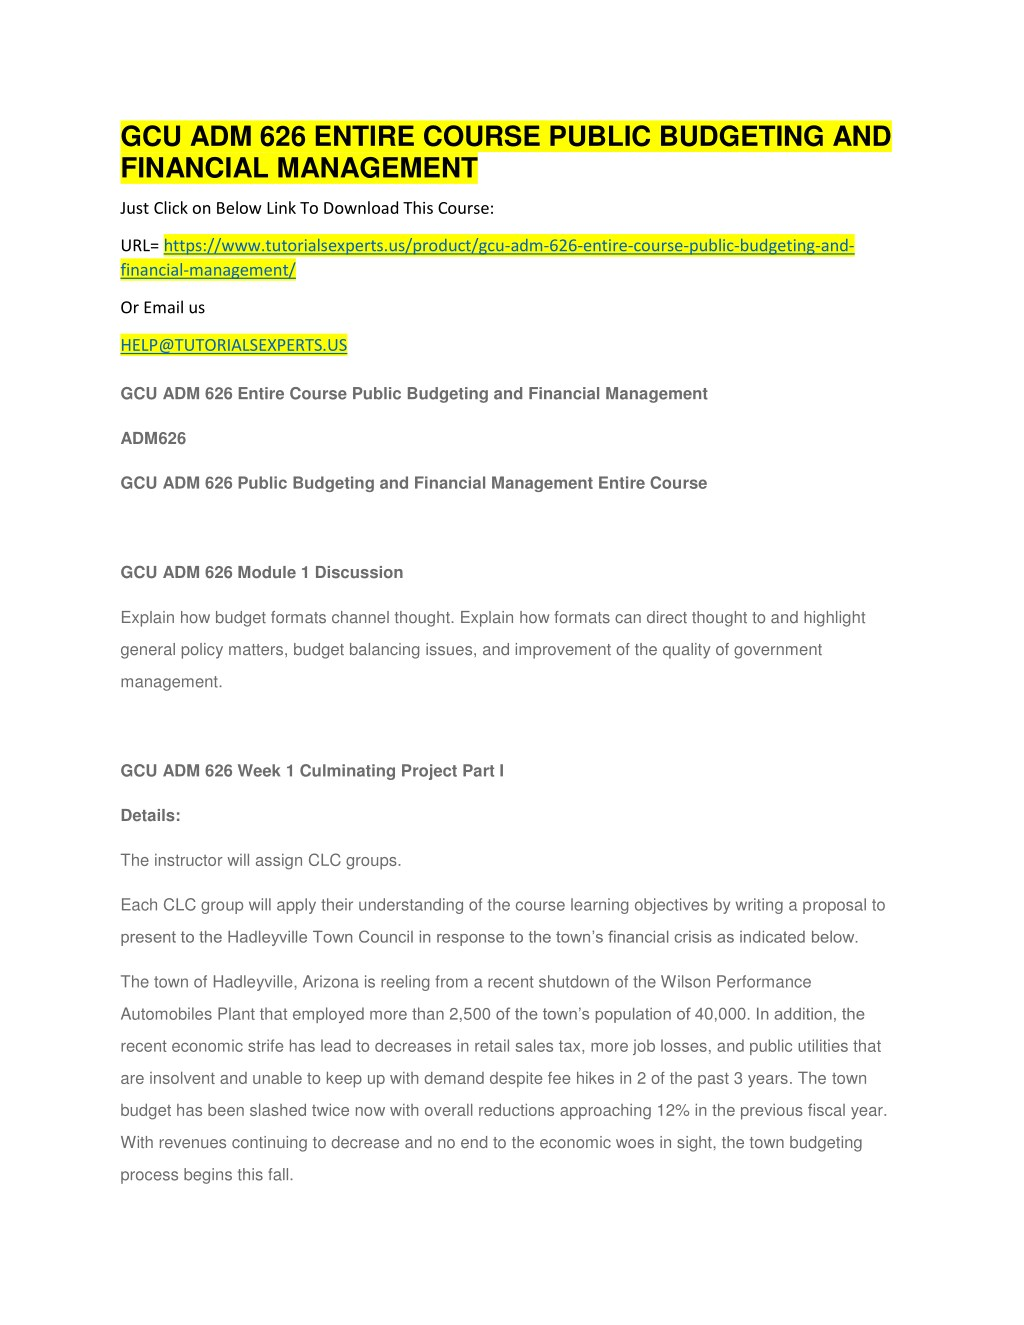 ppt gcu adm 626 entire course public budgeting and financial